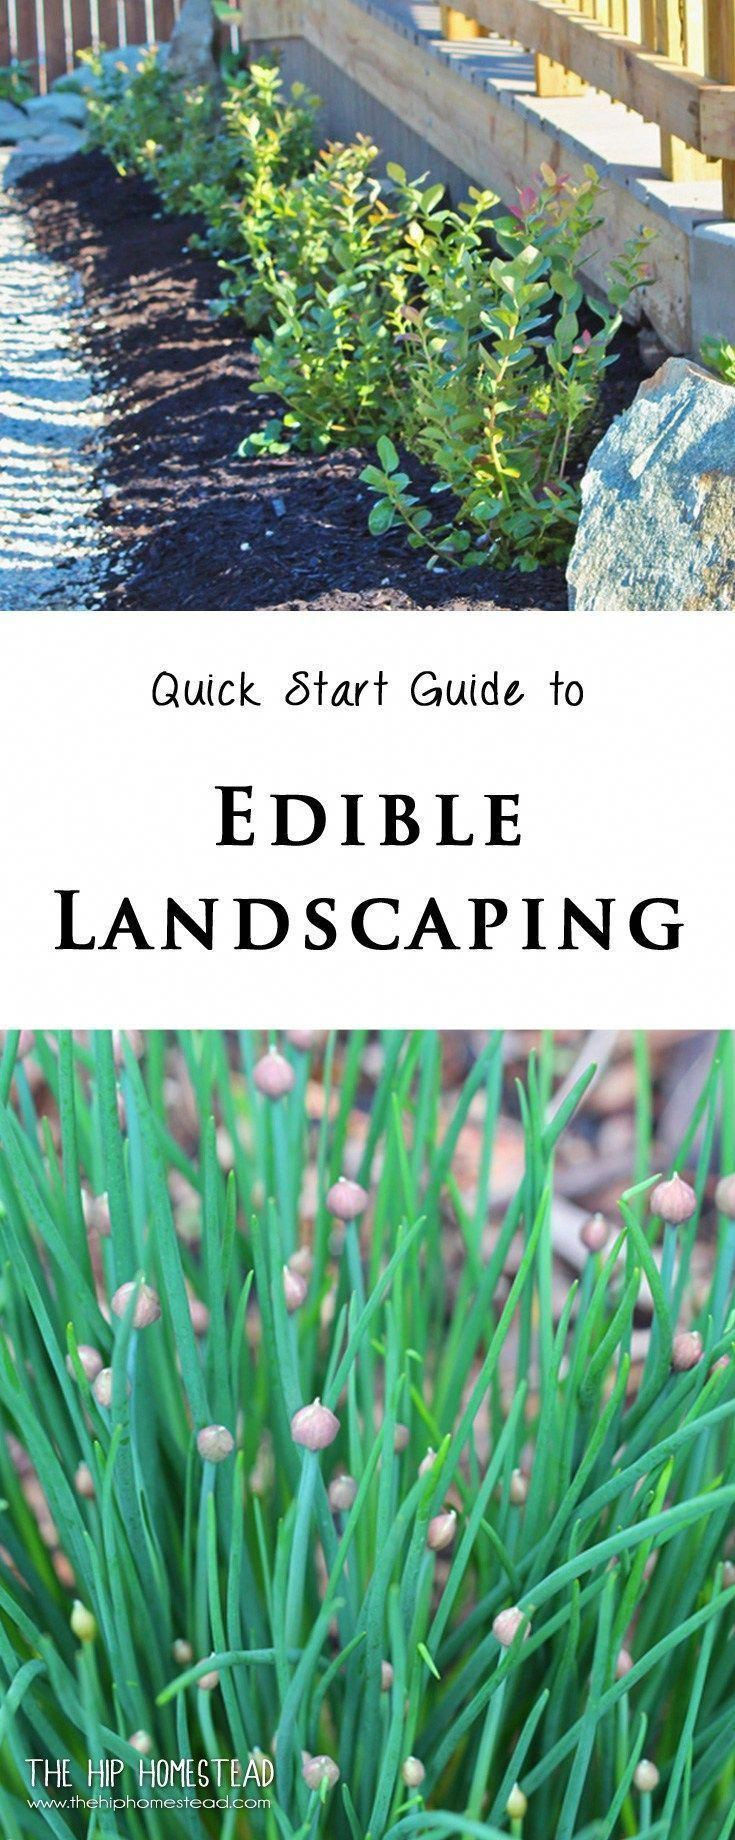 Quick Guide to Edible Landscaping The Hip Homestead